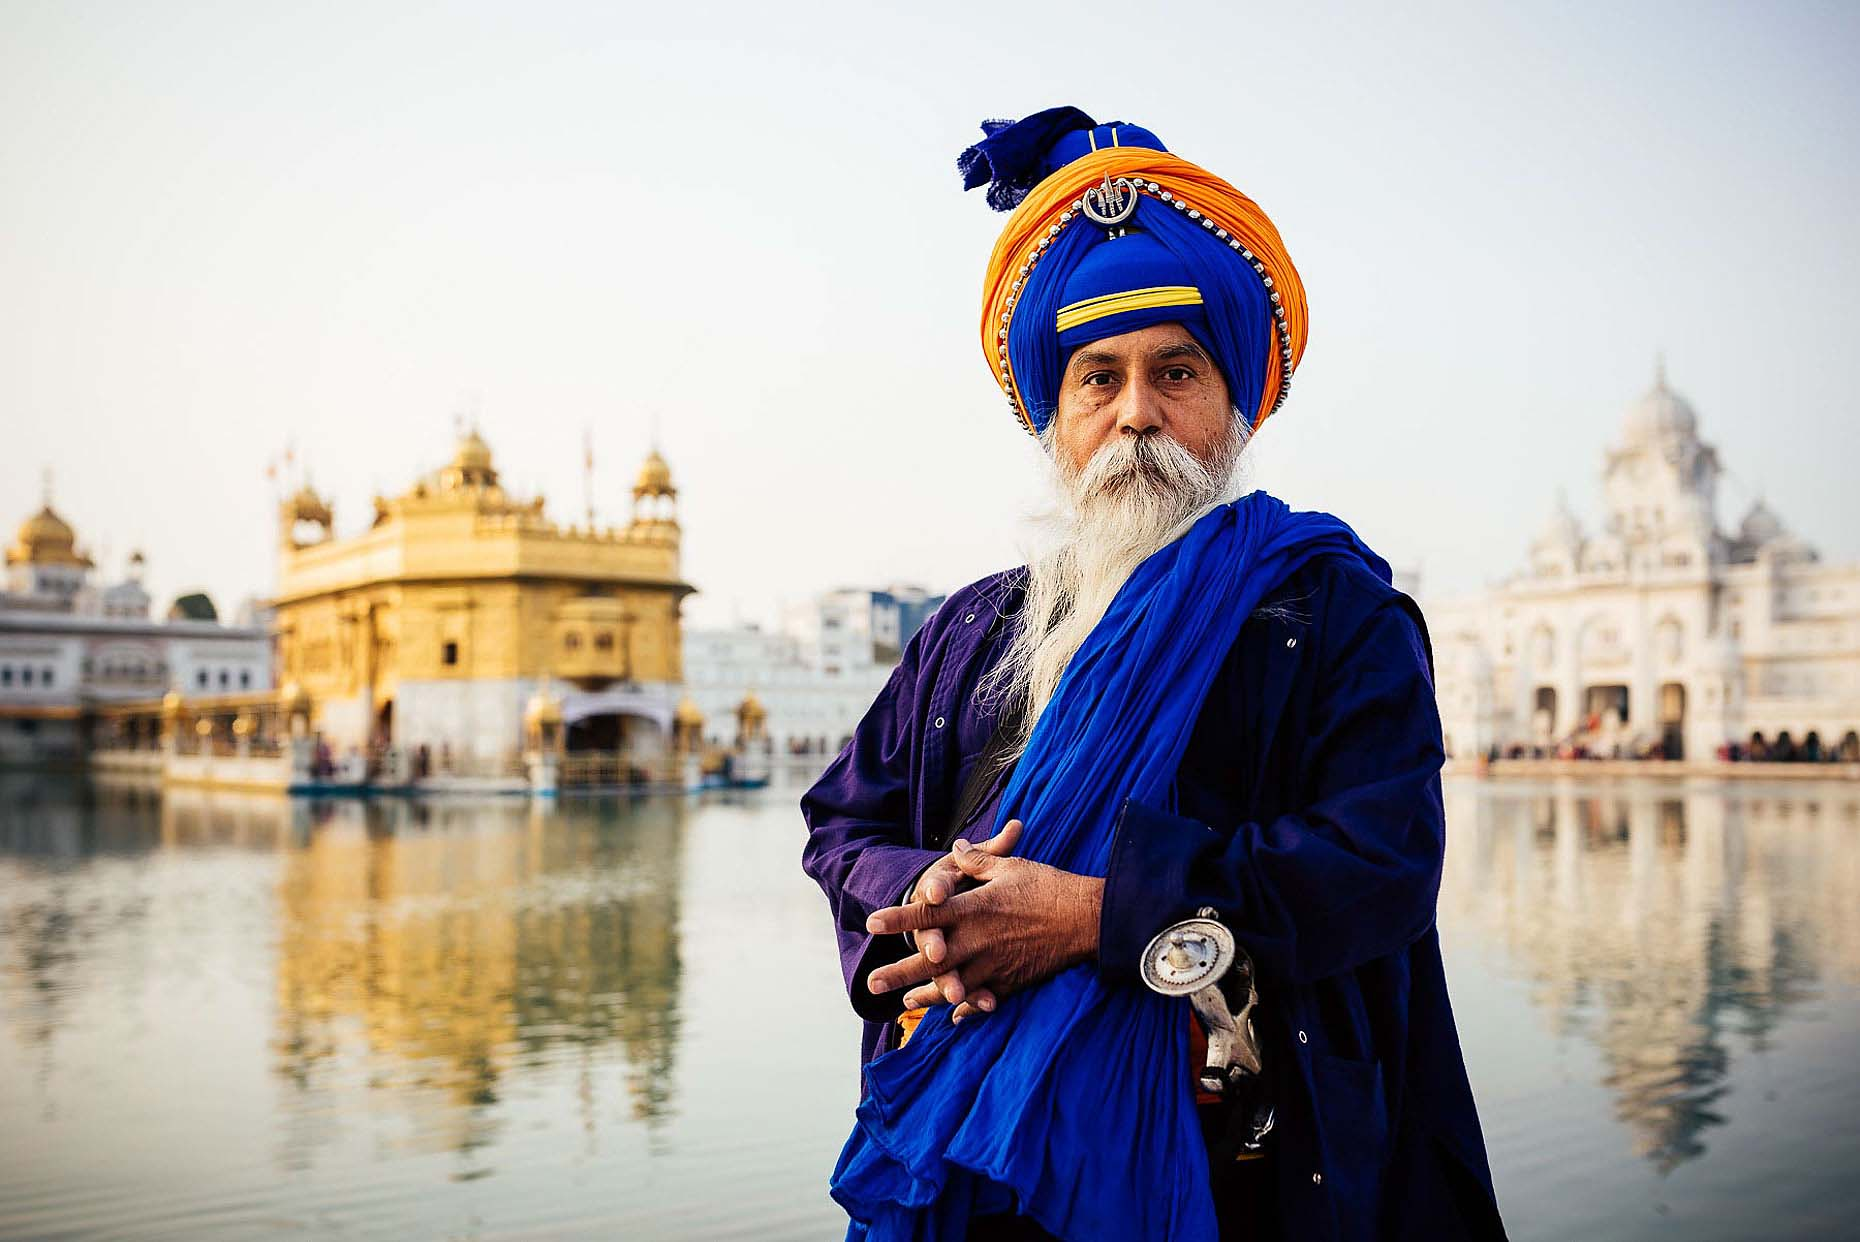 travel-portrait-harmandir-sahib-golden-temple-amritsar-india-04